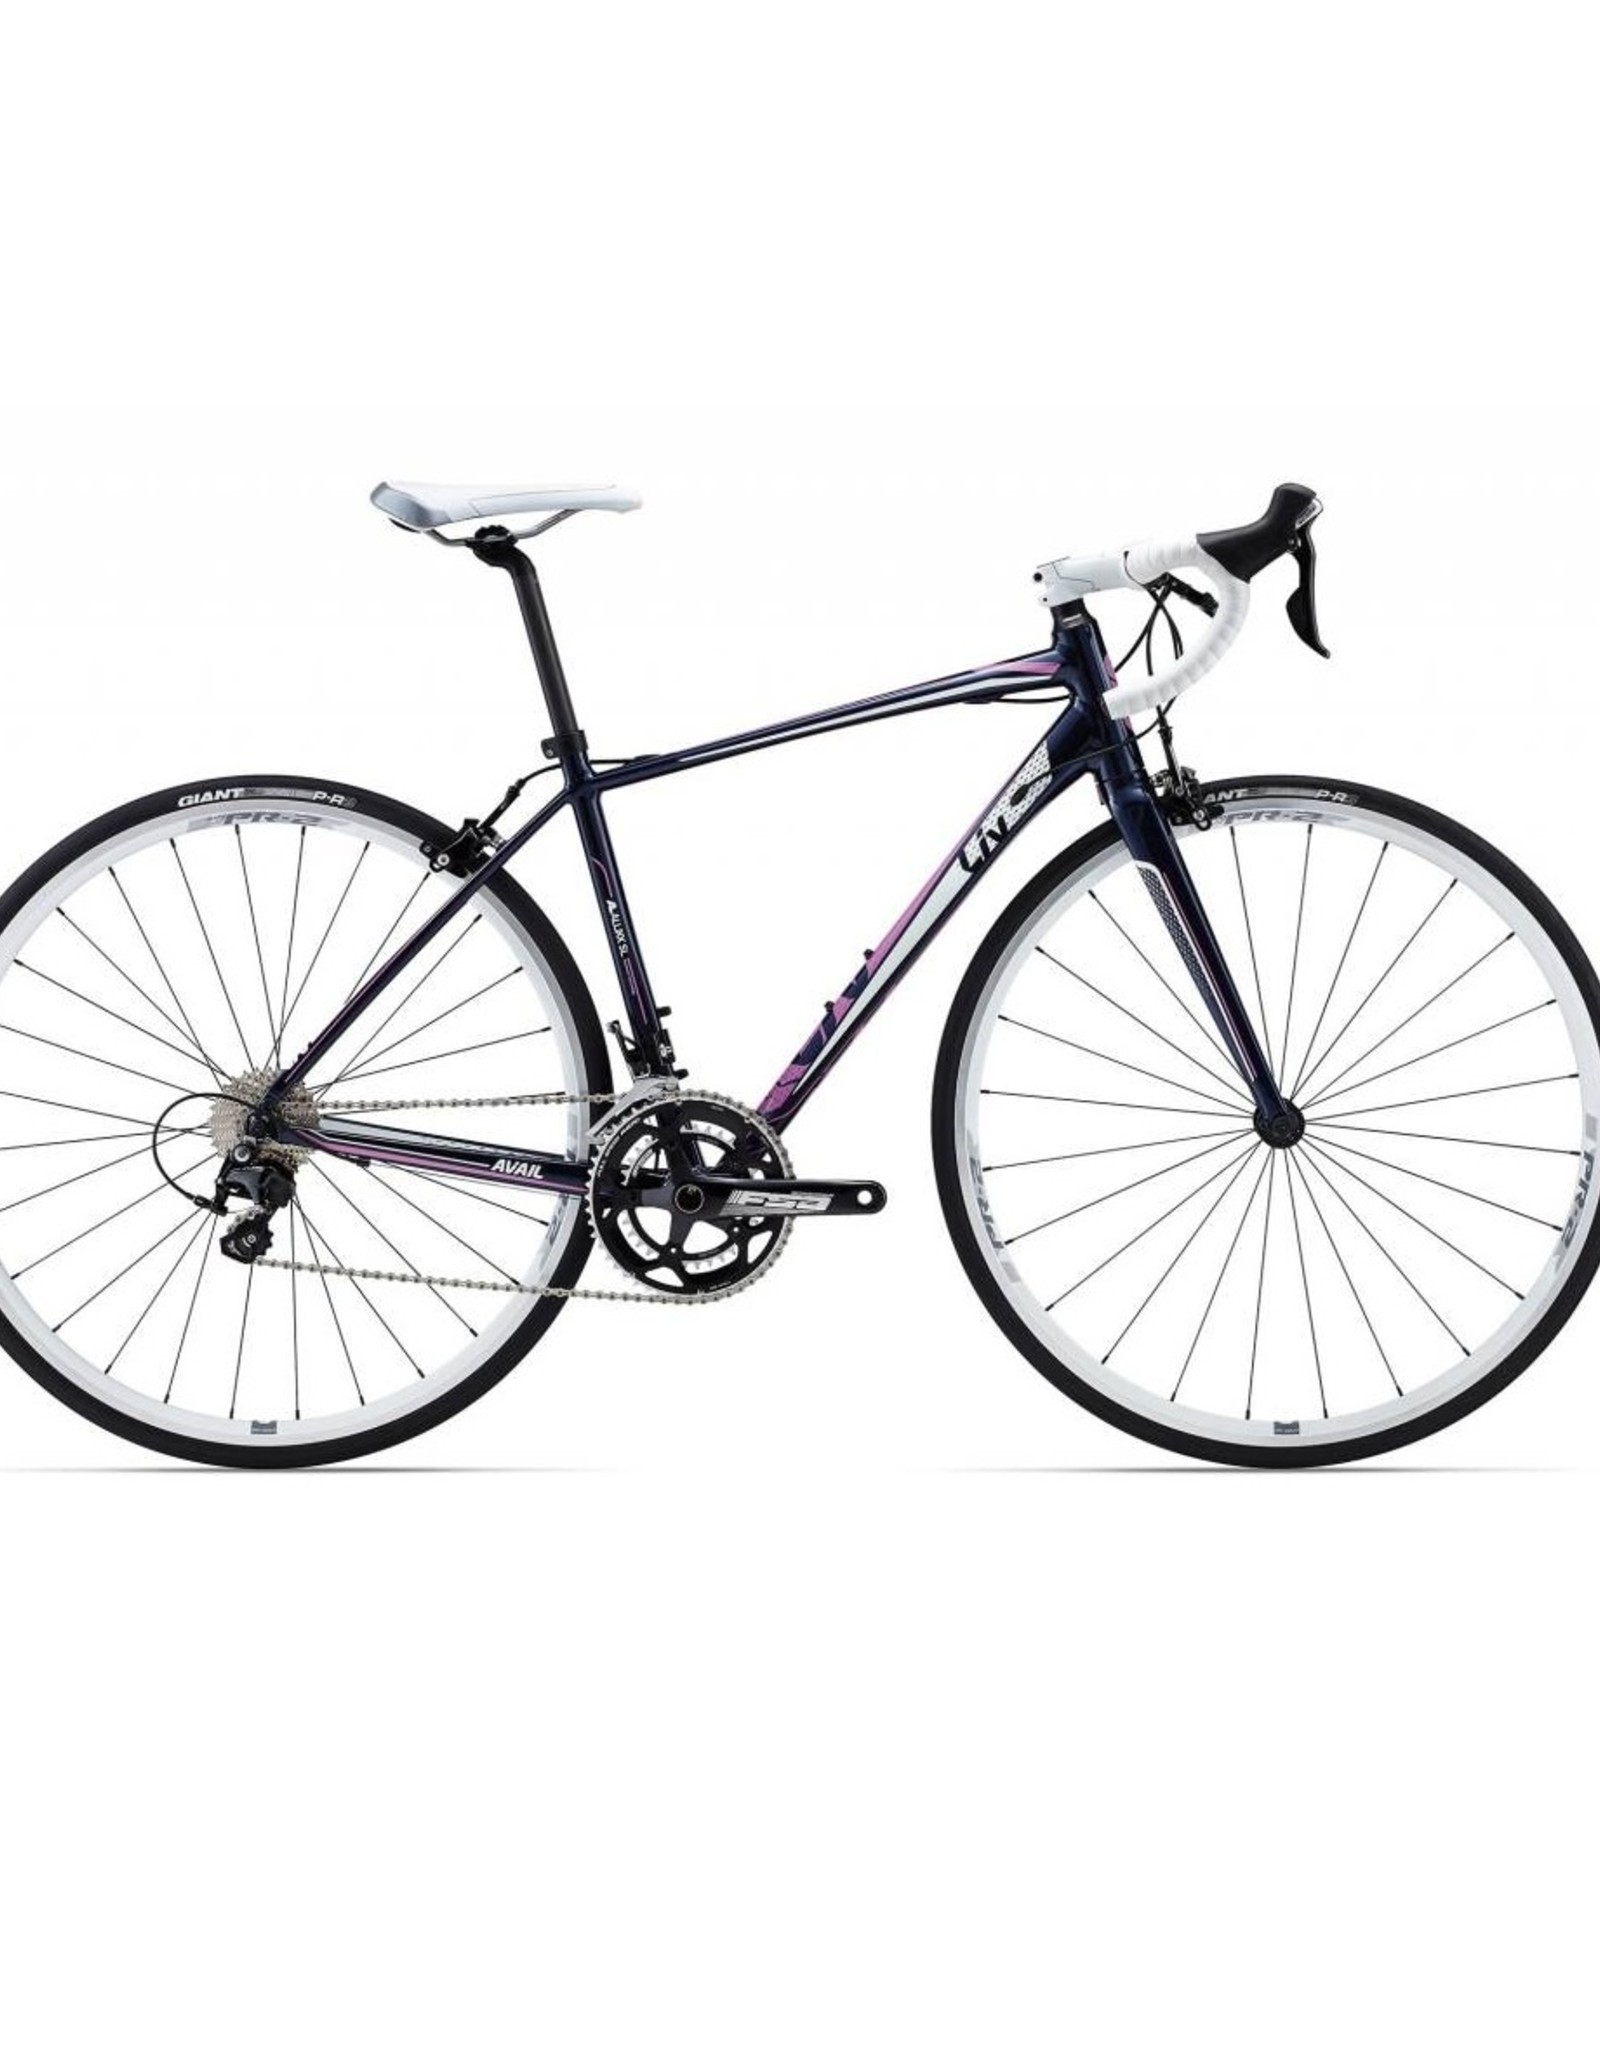 Giant Avail 1 2015 Women's Aluminum Bicycle (Used)